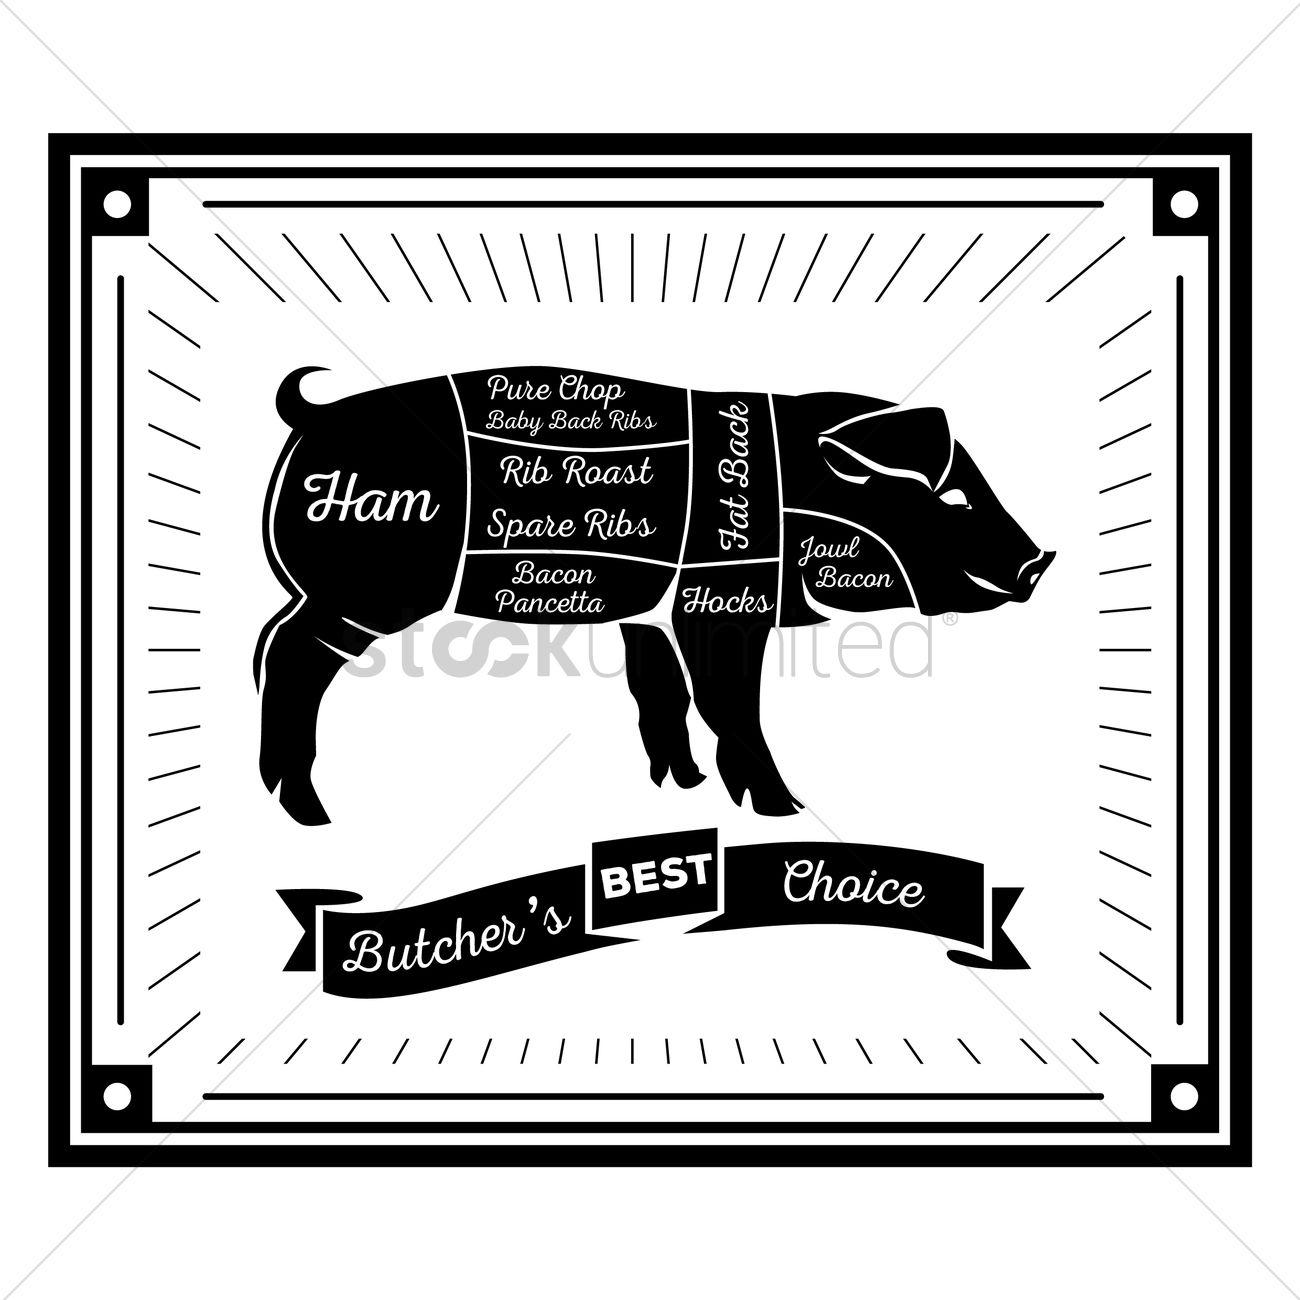 butcher pig cuts diagram_1490979 butcher pig cuts diagram vector image 1490979 stockunlimited